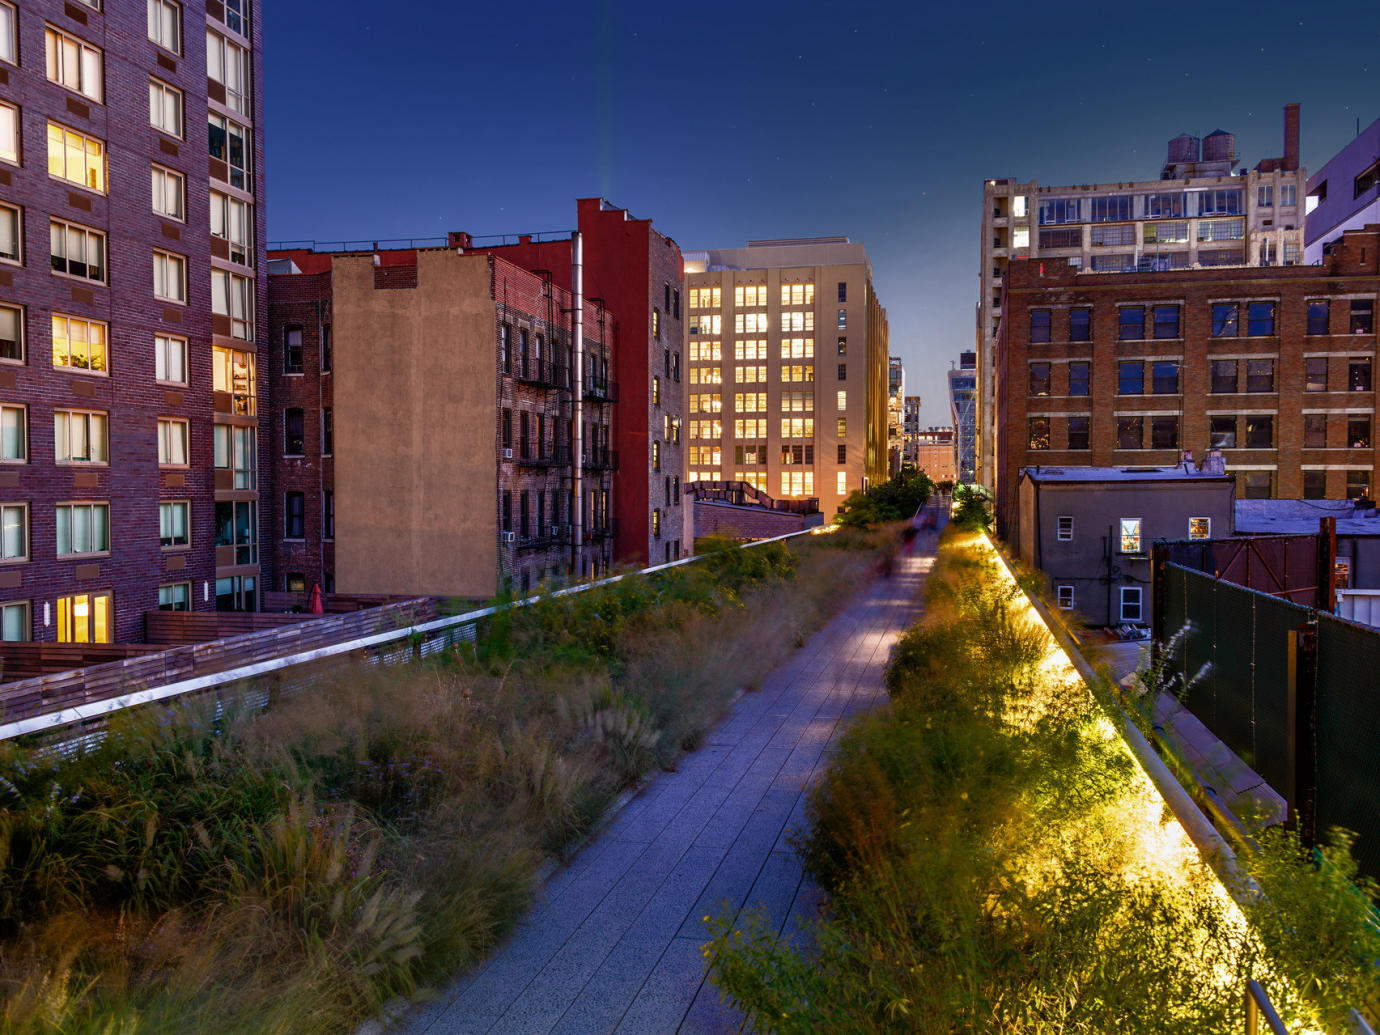 The High Line in NYC at night